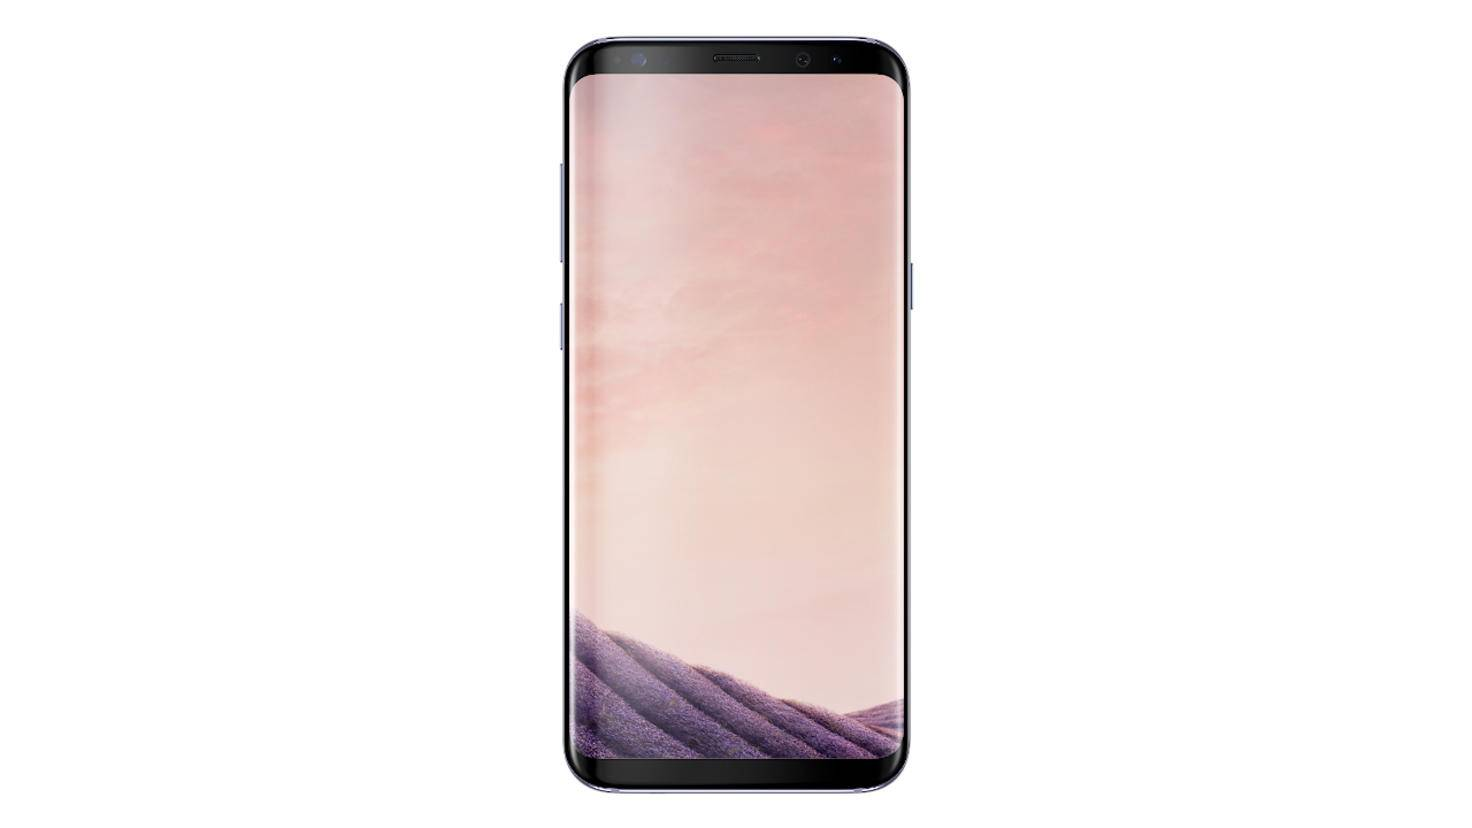 Das Galaxy S8 in Orchid Grey.